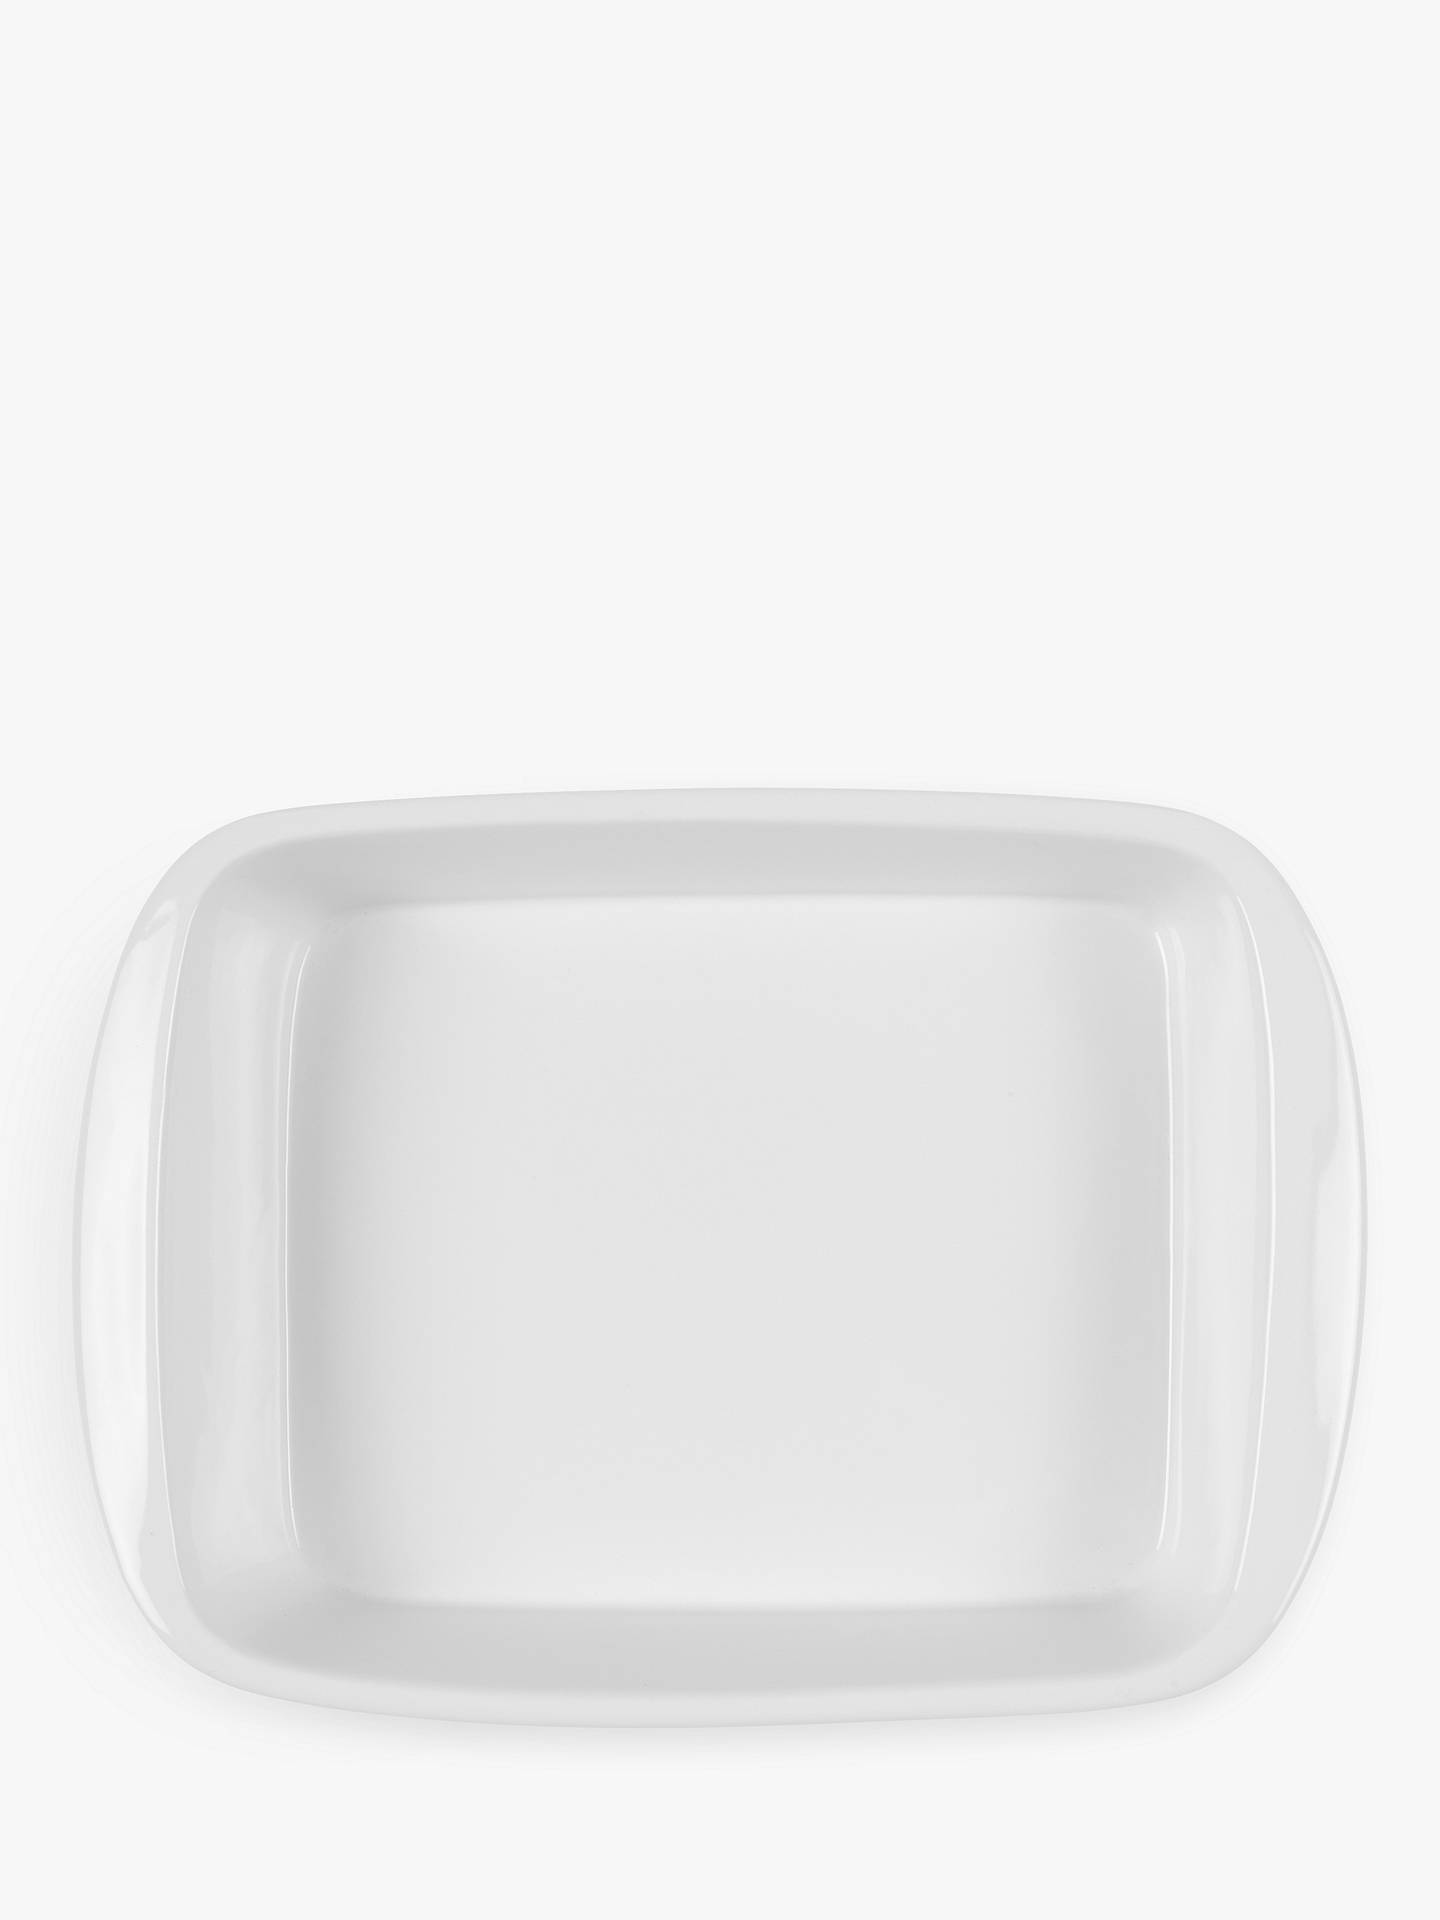 Buy John Lewis & Partners Porcelain Round Roaster Oven Dish, L36cm Online at johnlewis.com